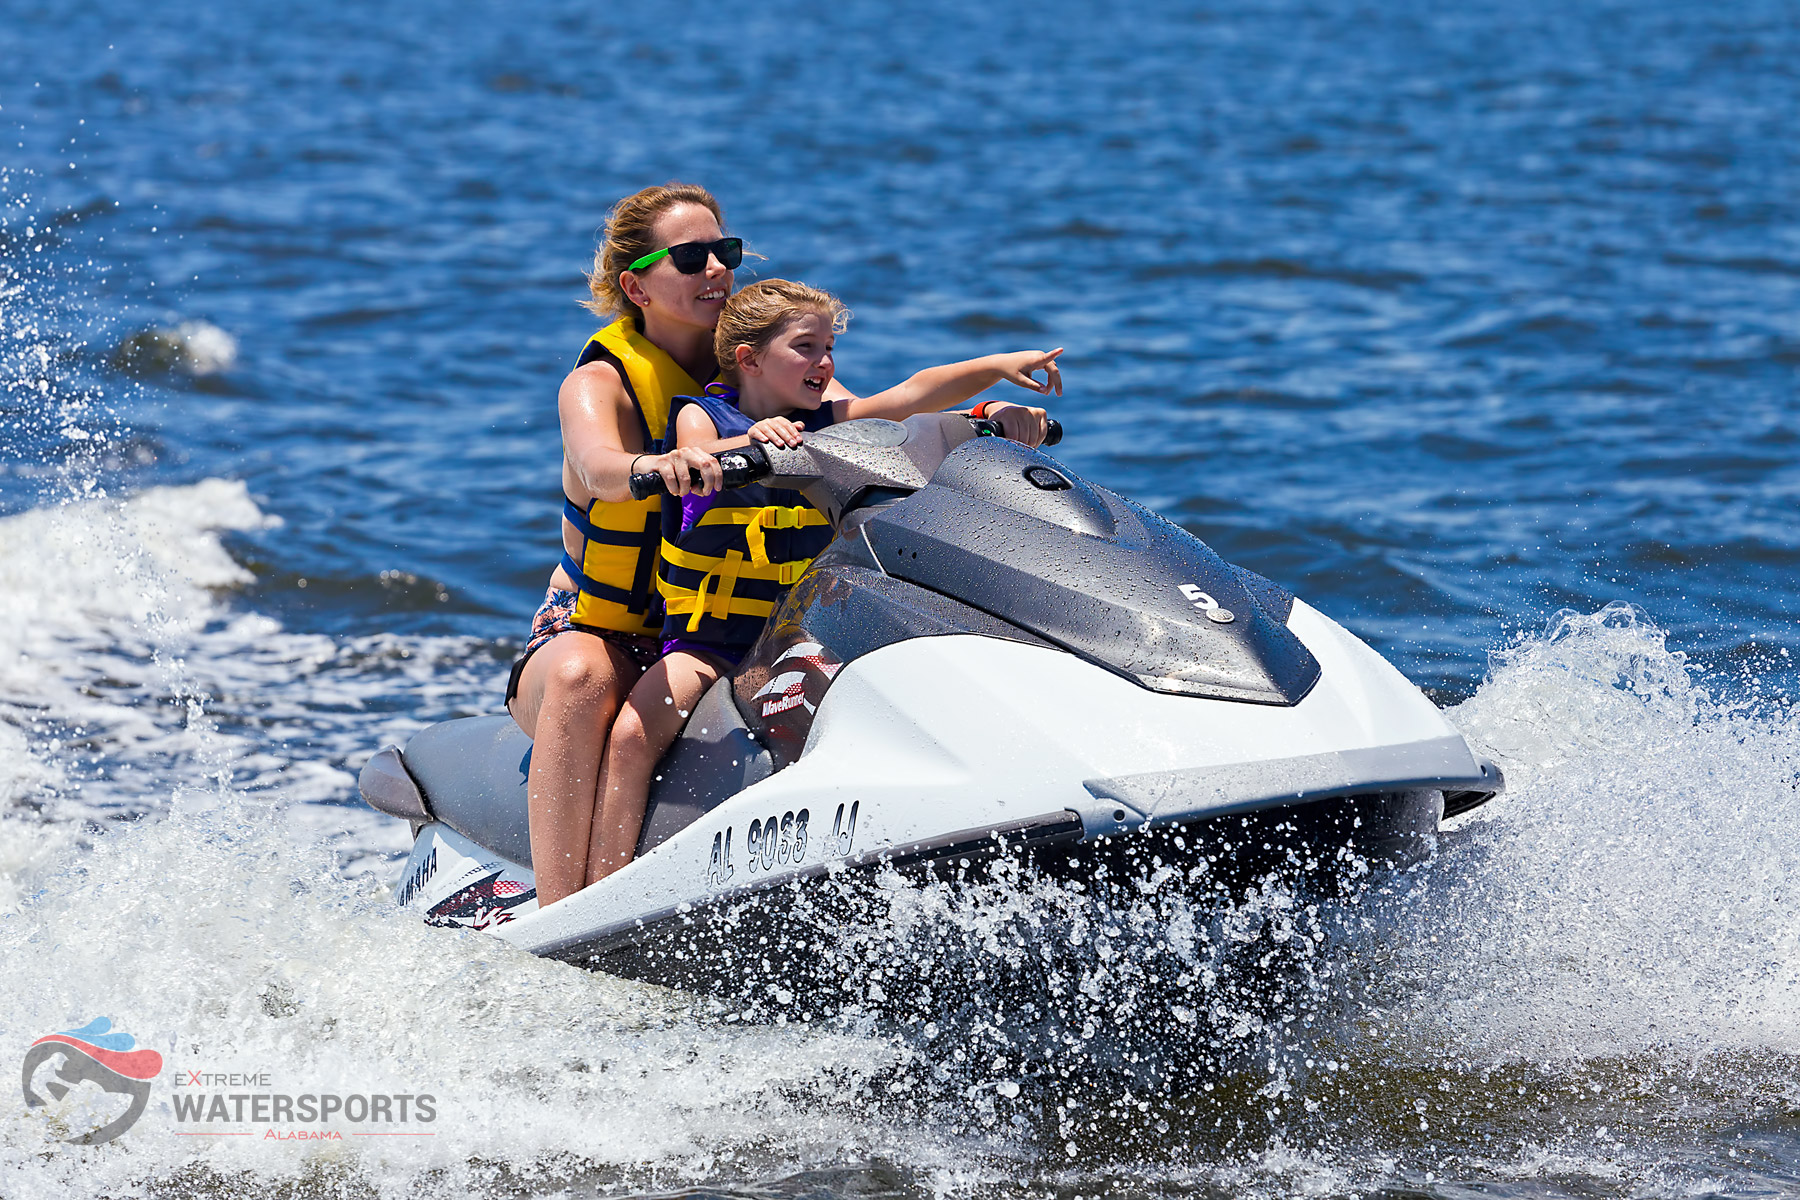 Rent a Jet Ski…Even With Kids